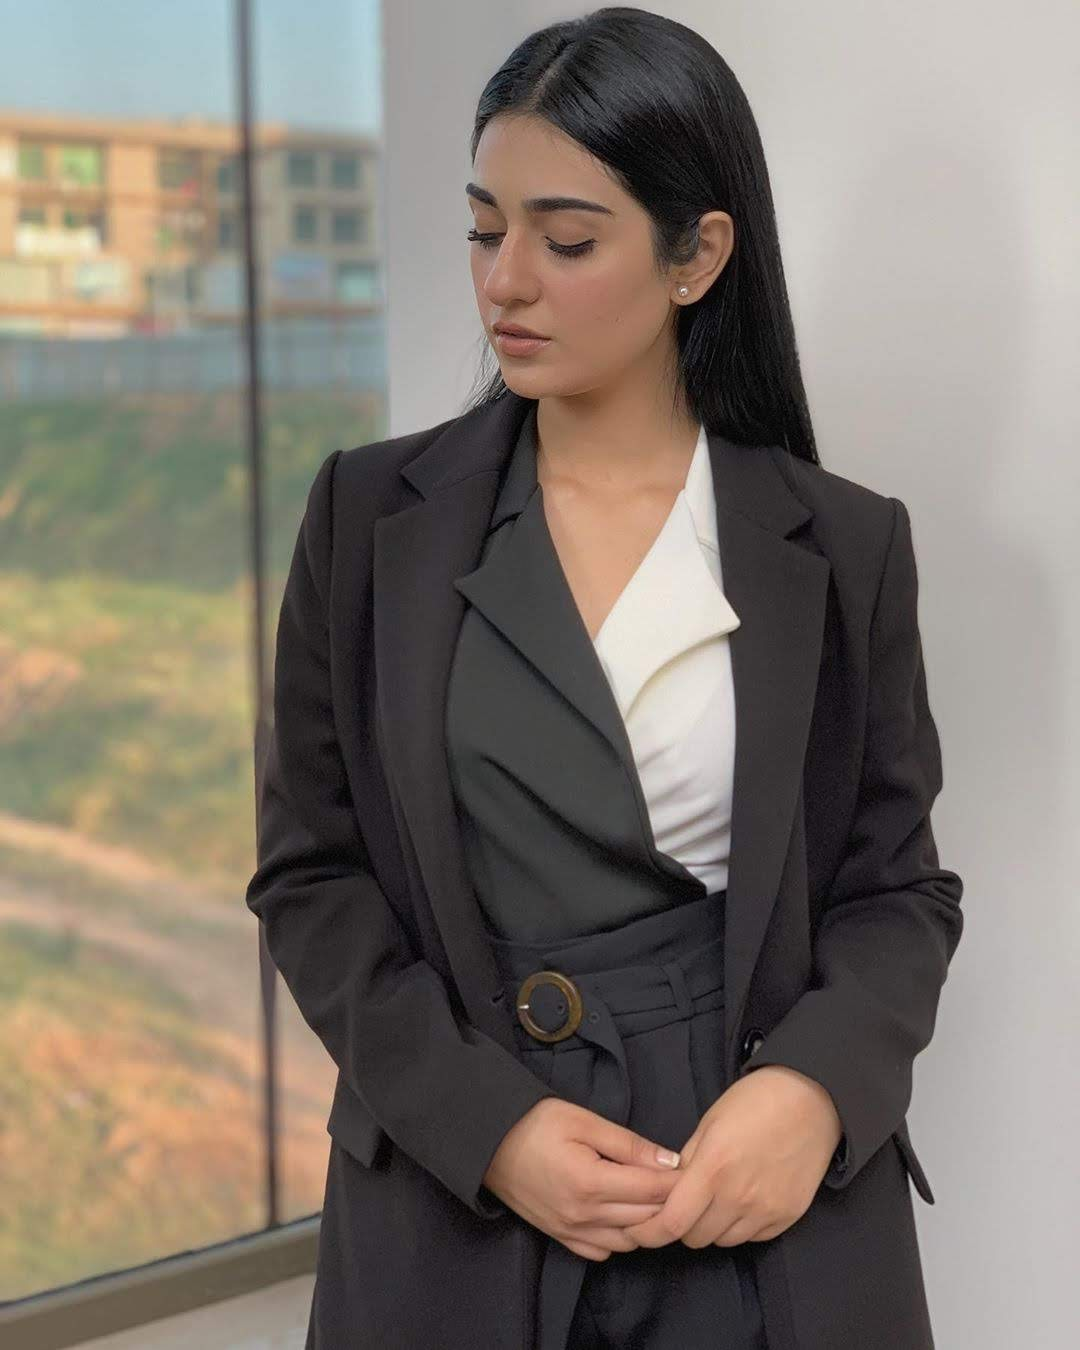 Gorgeous Sarah Khan Looking Awesome in New Pictures